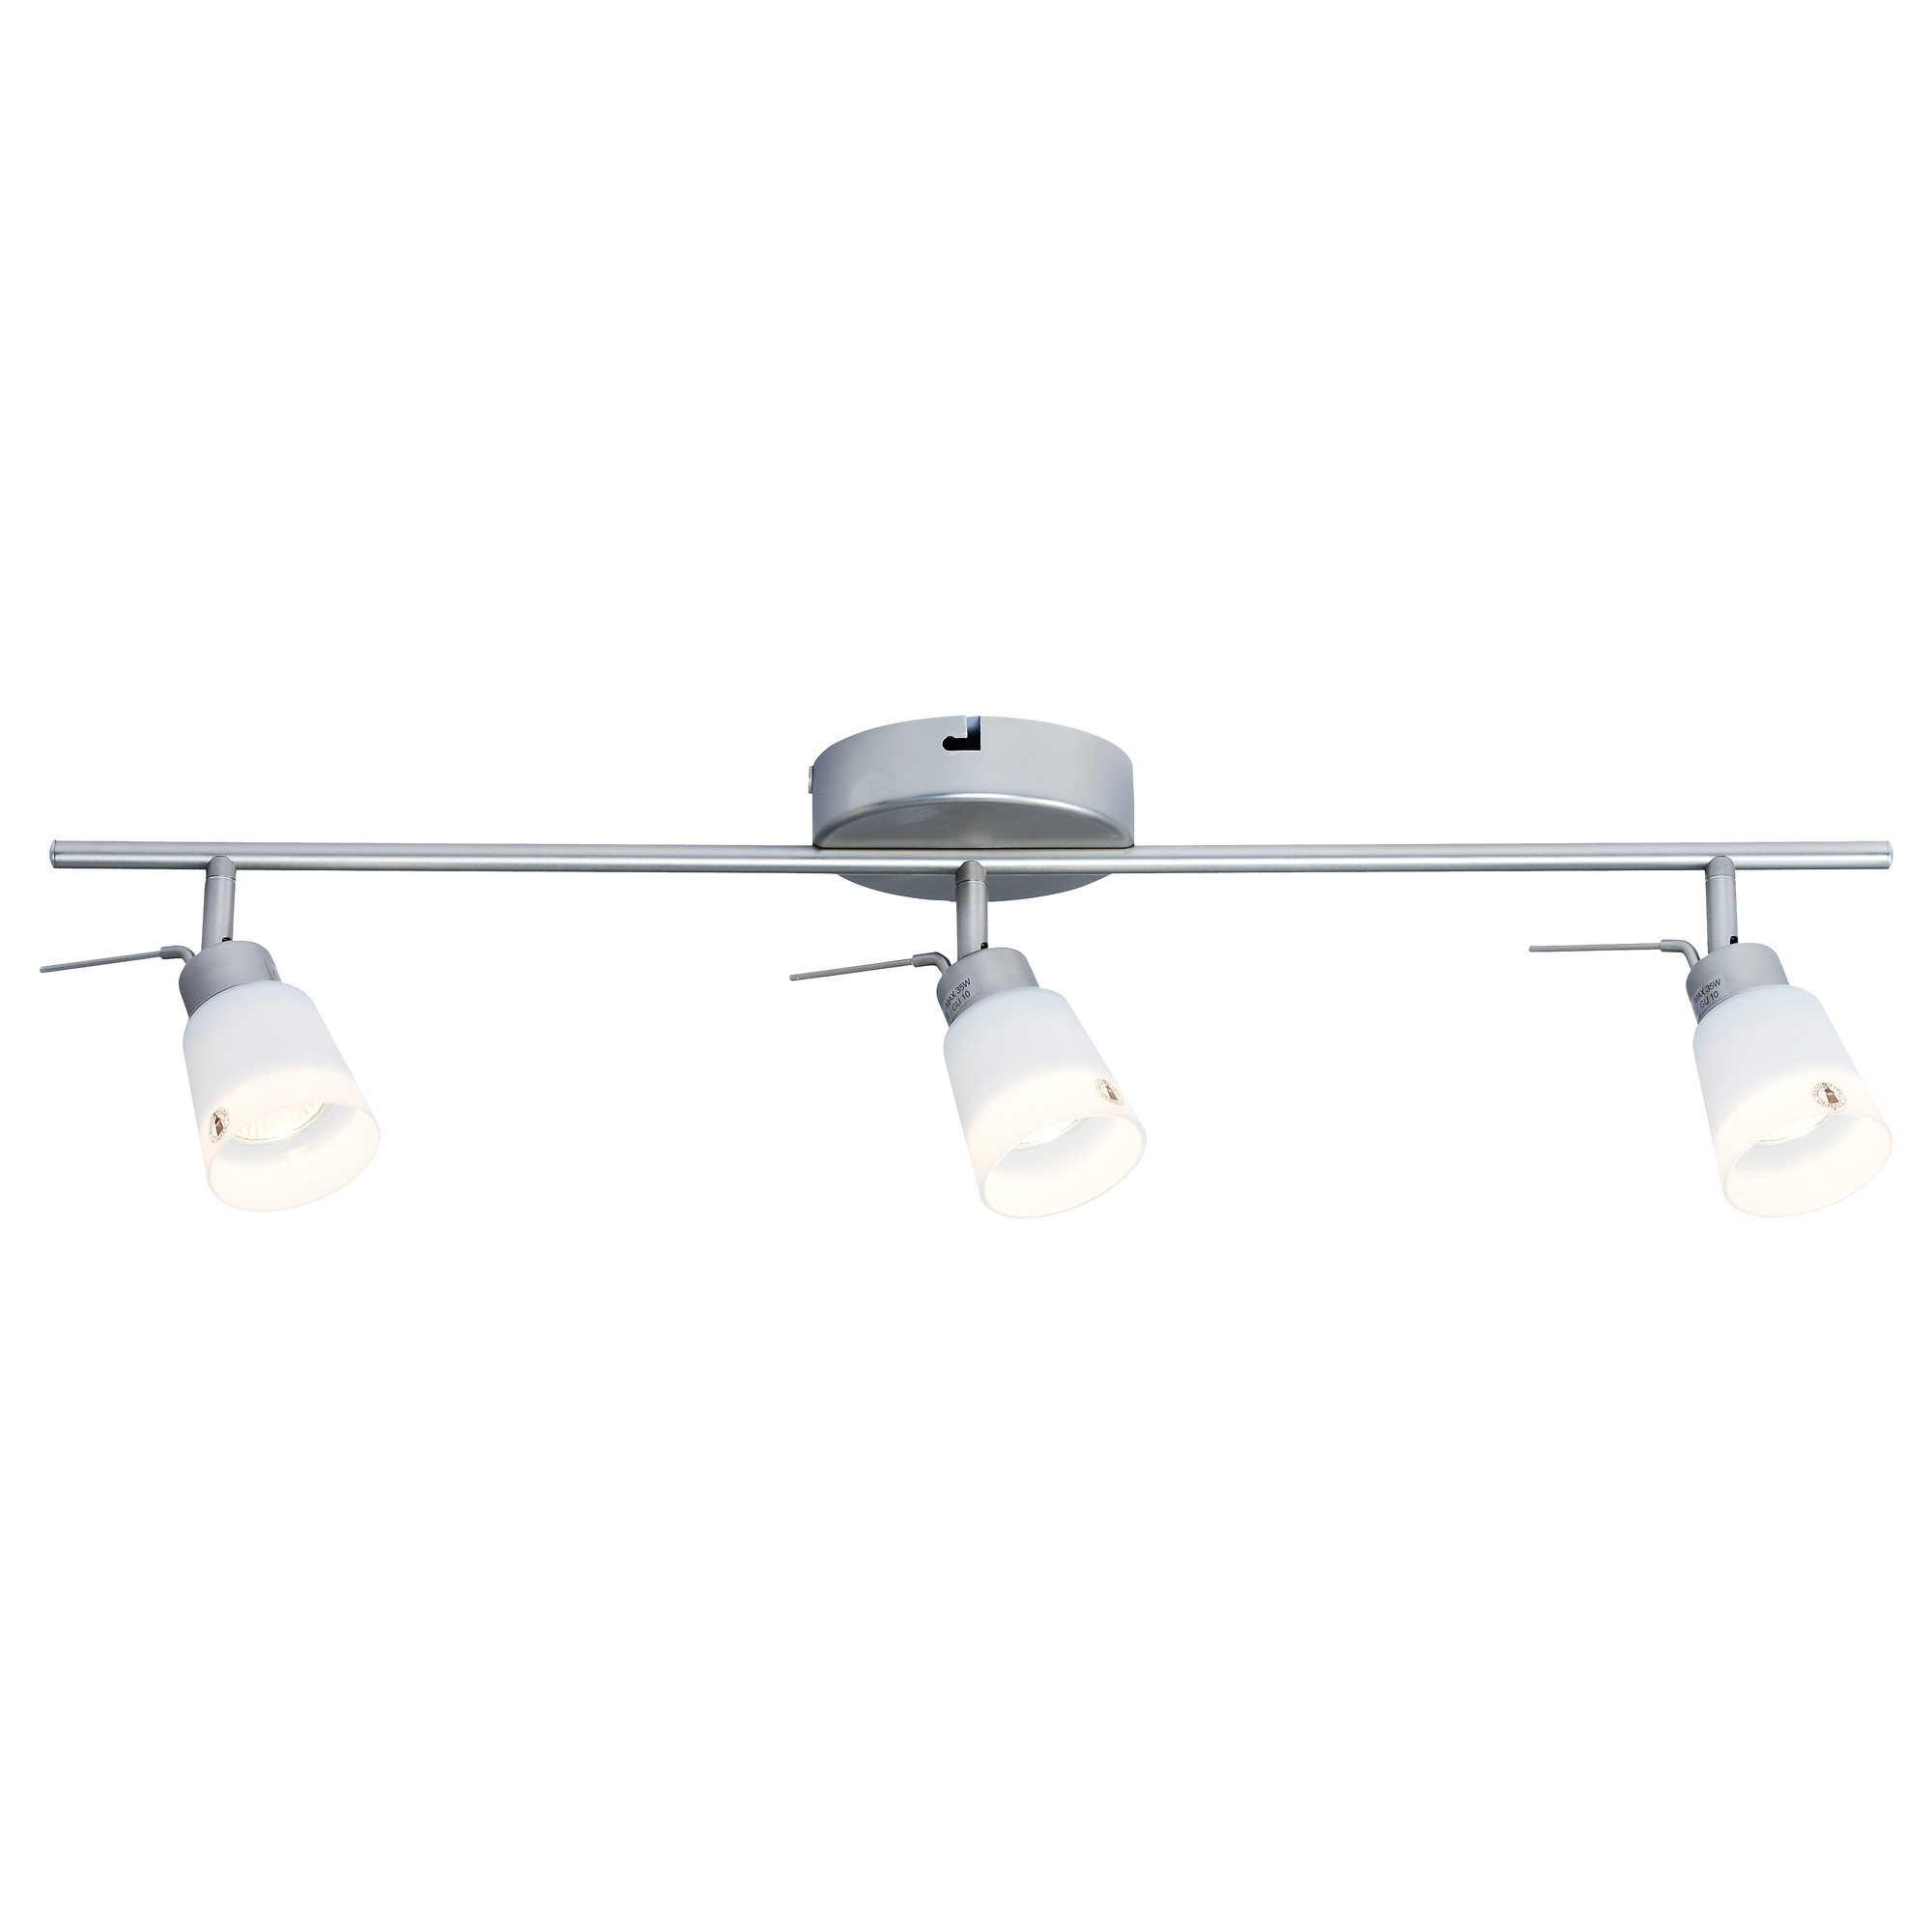 Basisk Ceiling Track 3 Spotlights Nickel Plated White